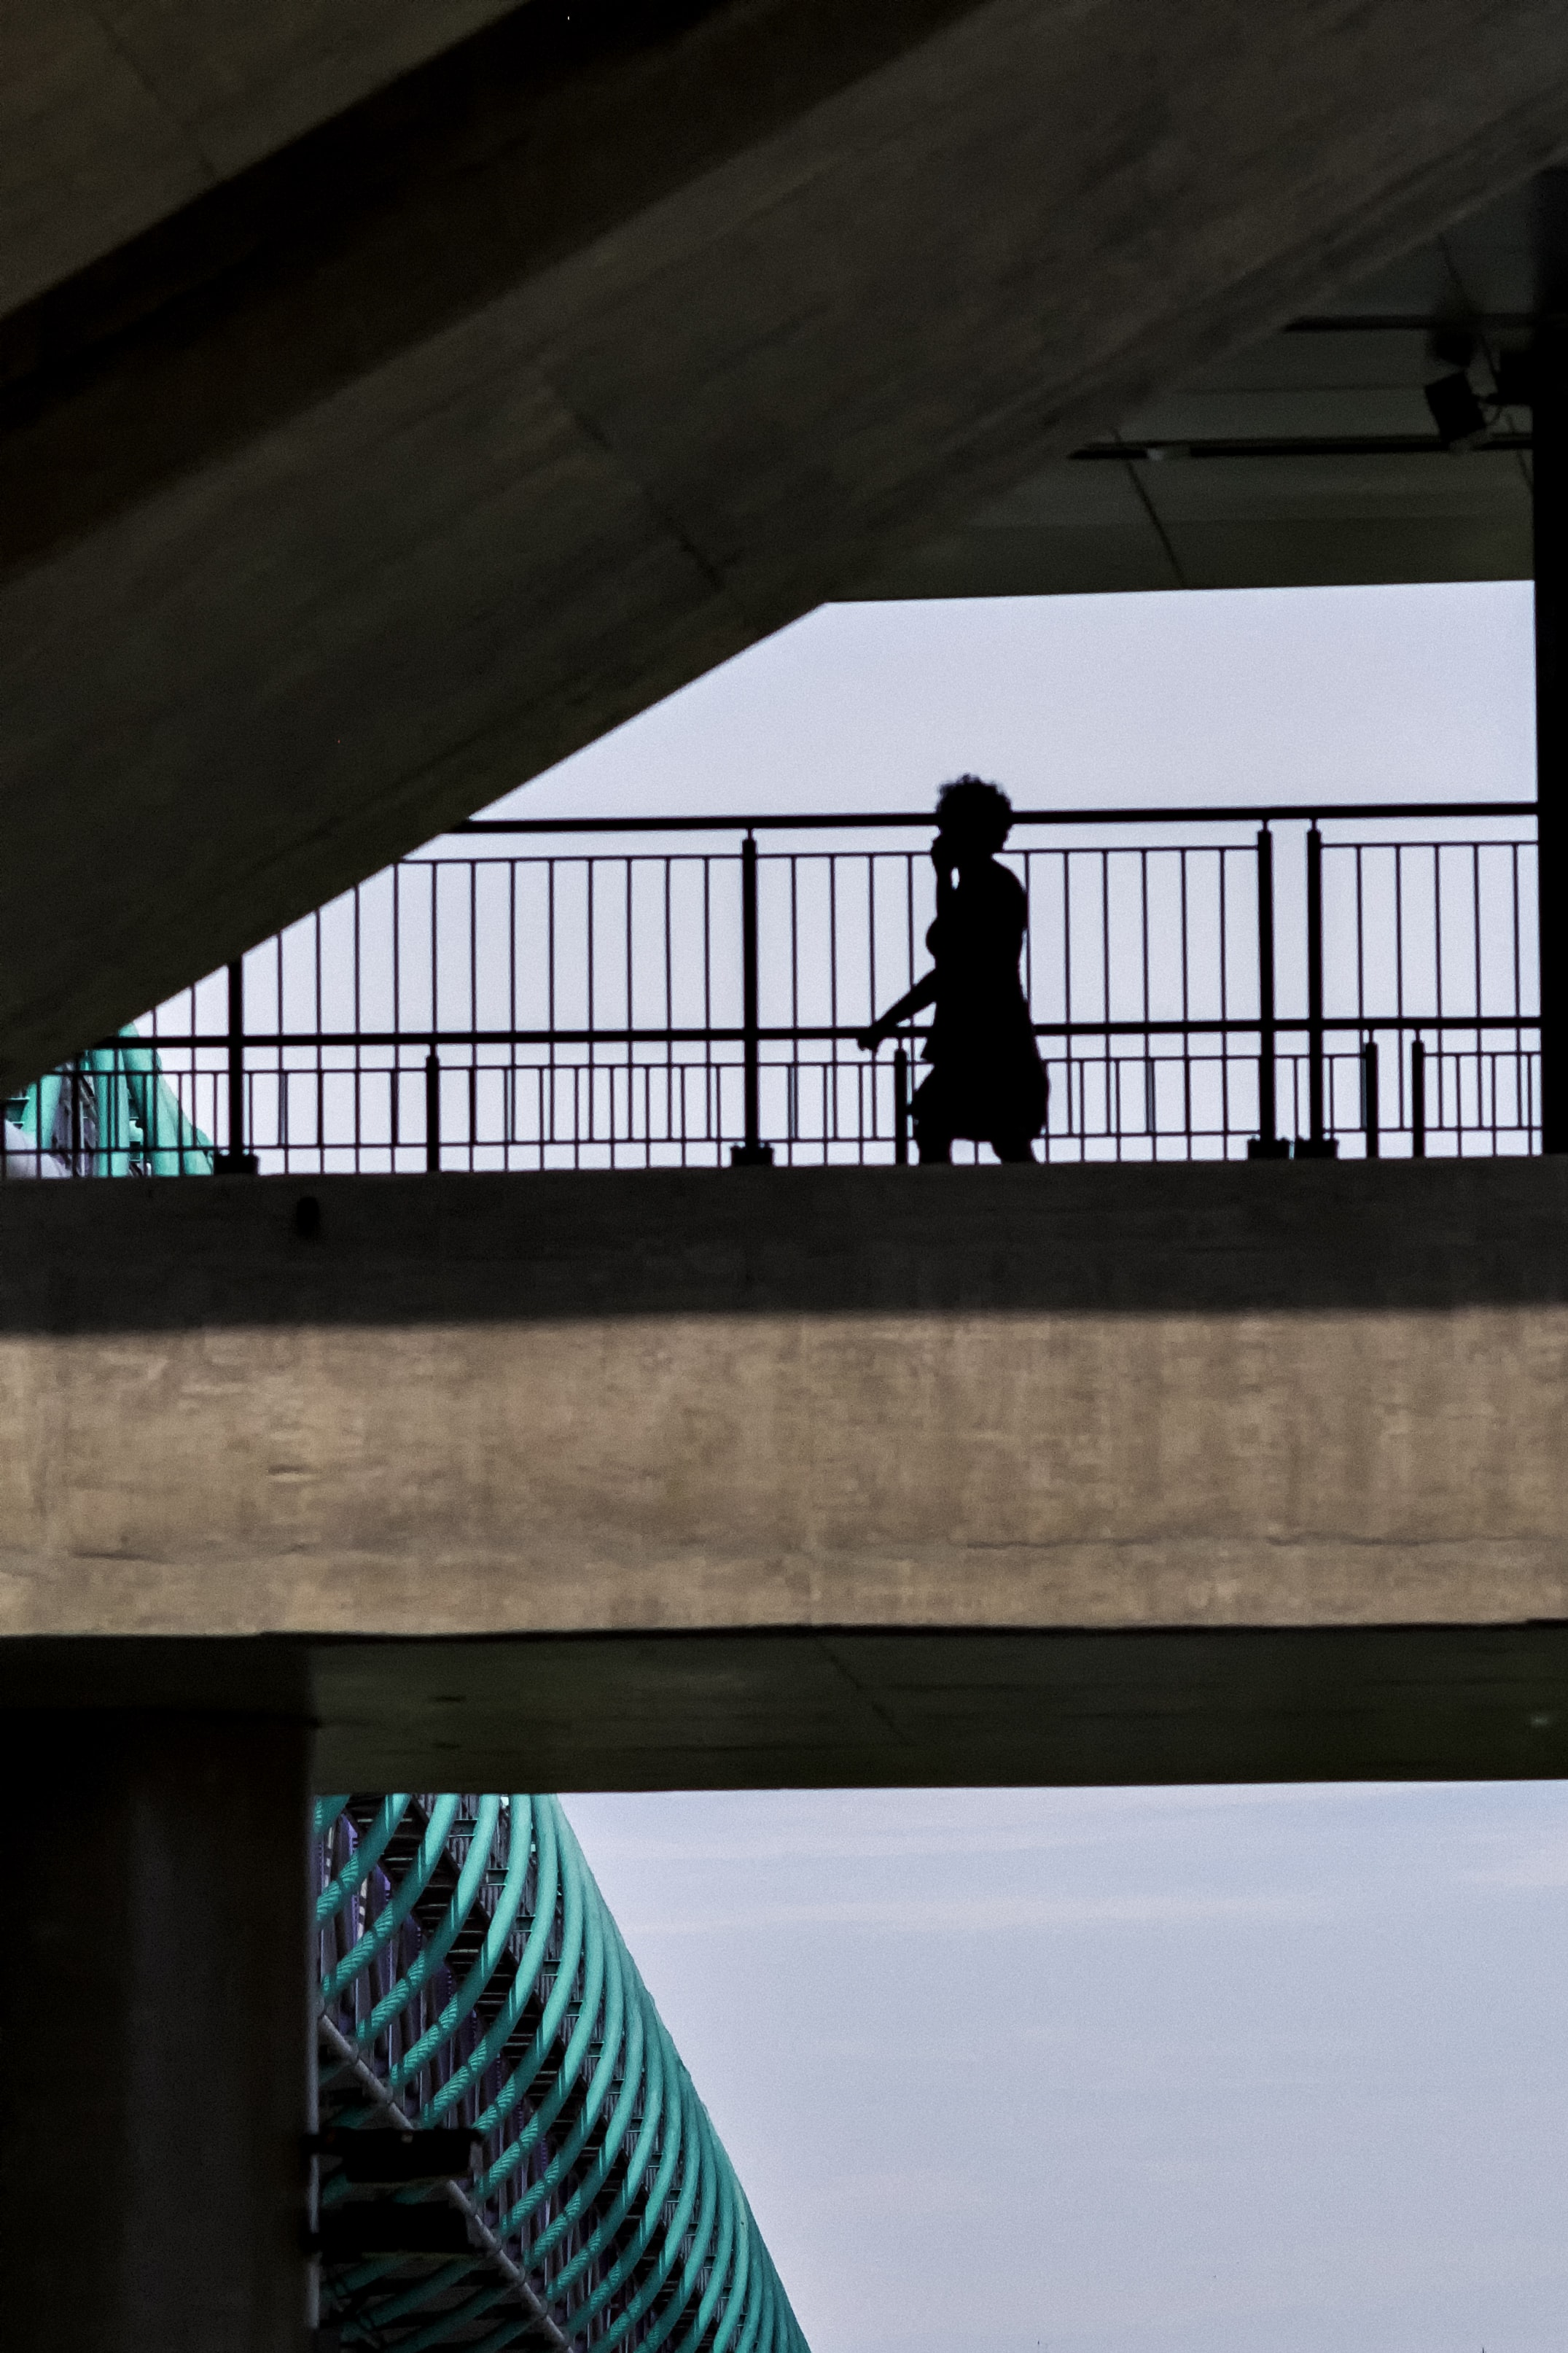 low angle of person crossing overpass